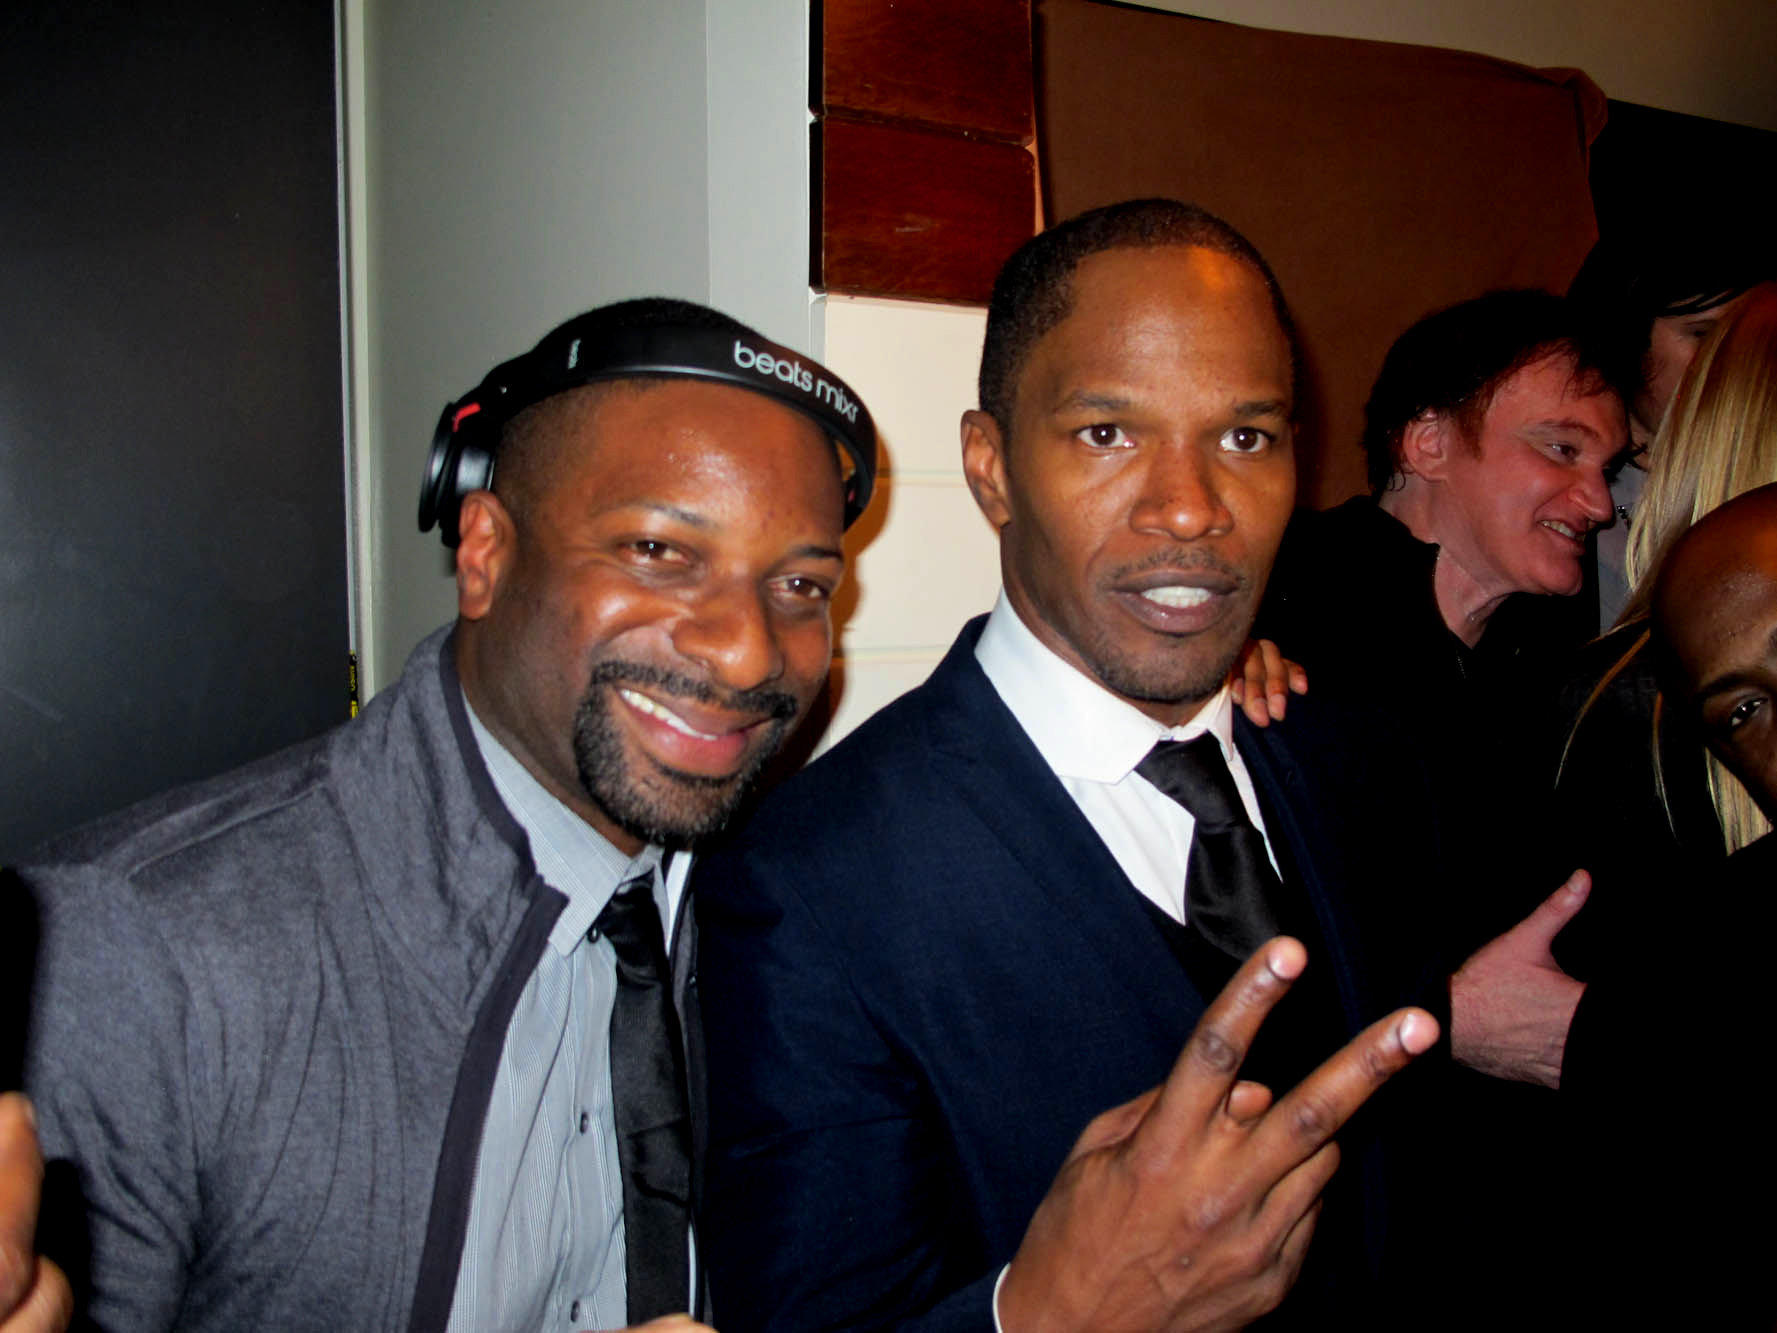 http://www.blackfilm.com/read/wp-content/uploads/2012/12/Django-Unchained-NY-Premiere-Afterparty-DJ-Irie-and-Jamie-Foxx.jpg